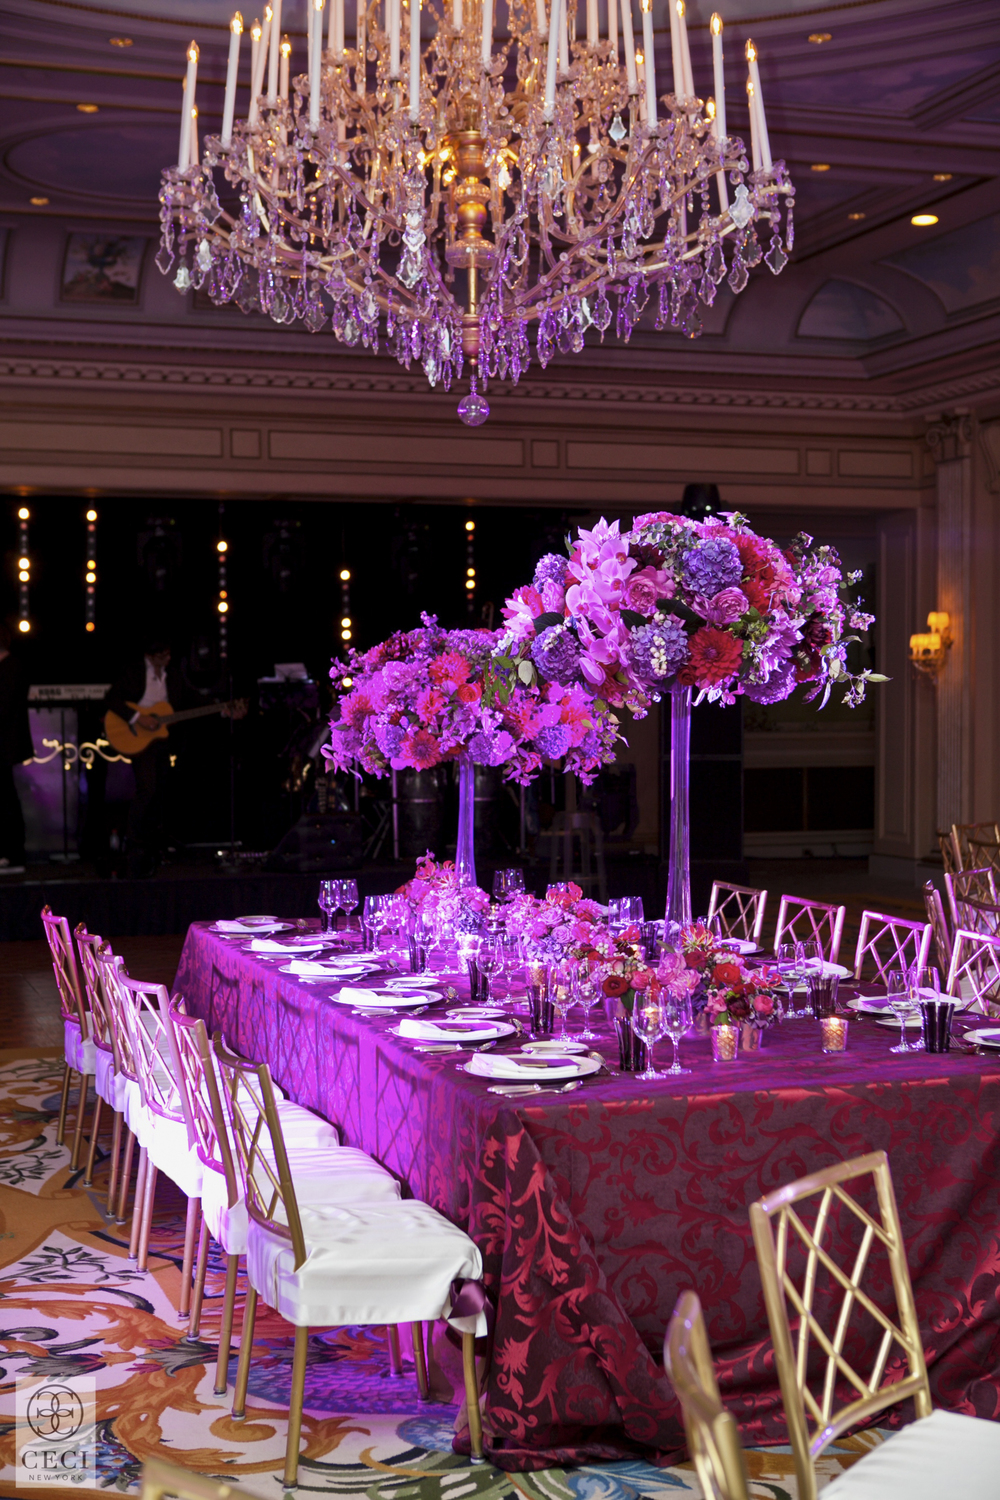 ceci_new_york_lucas_somoza_purple_regal_wediding_birthday_commitment_ceremony_gold-14.jpg